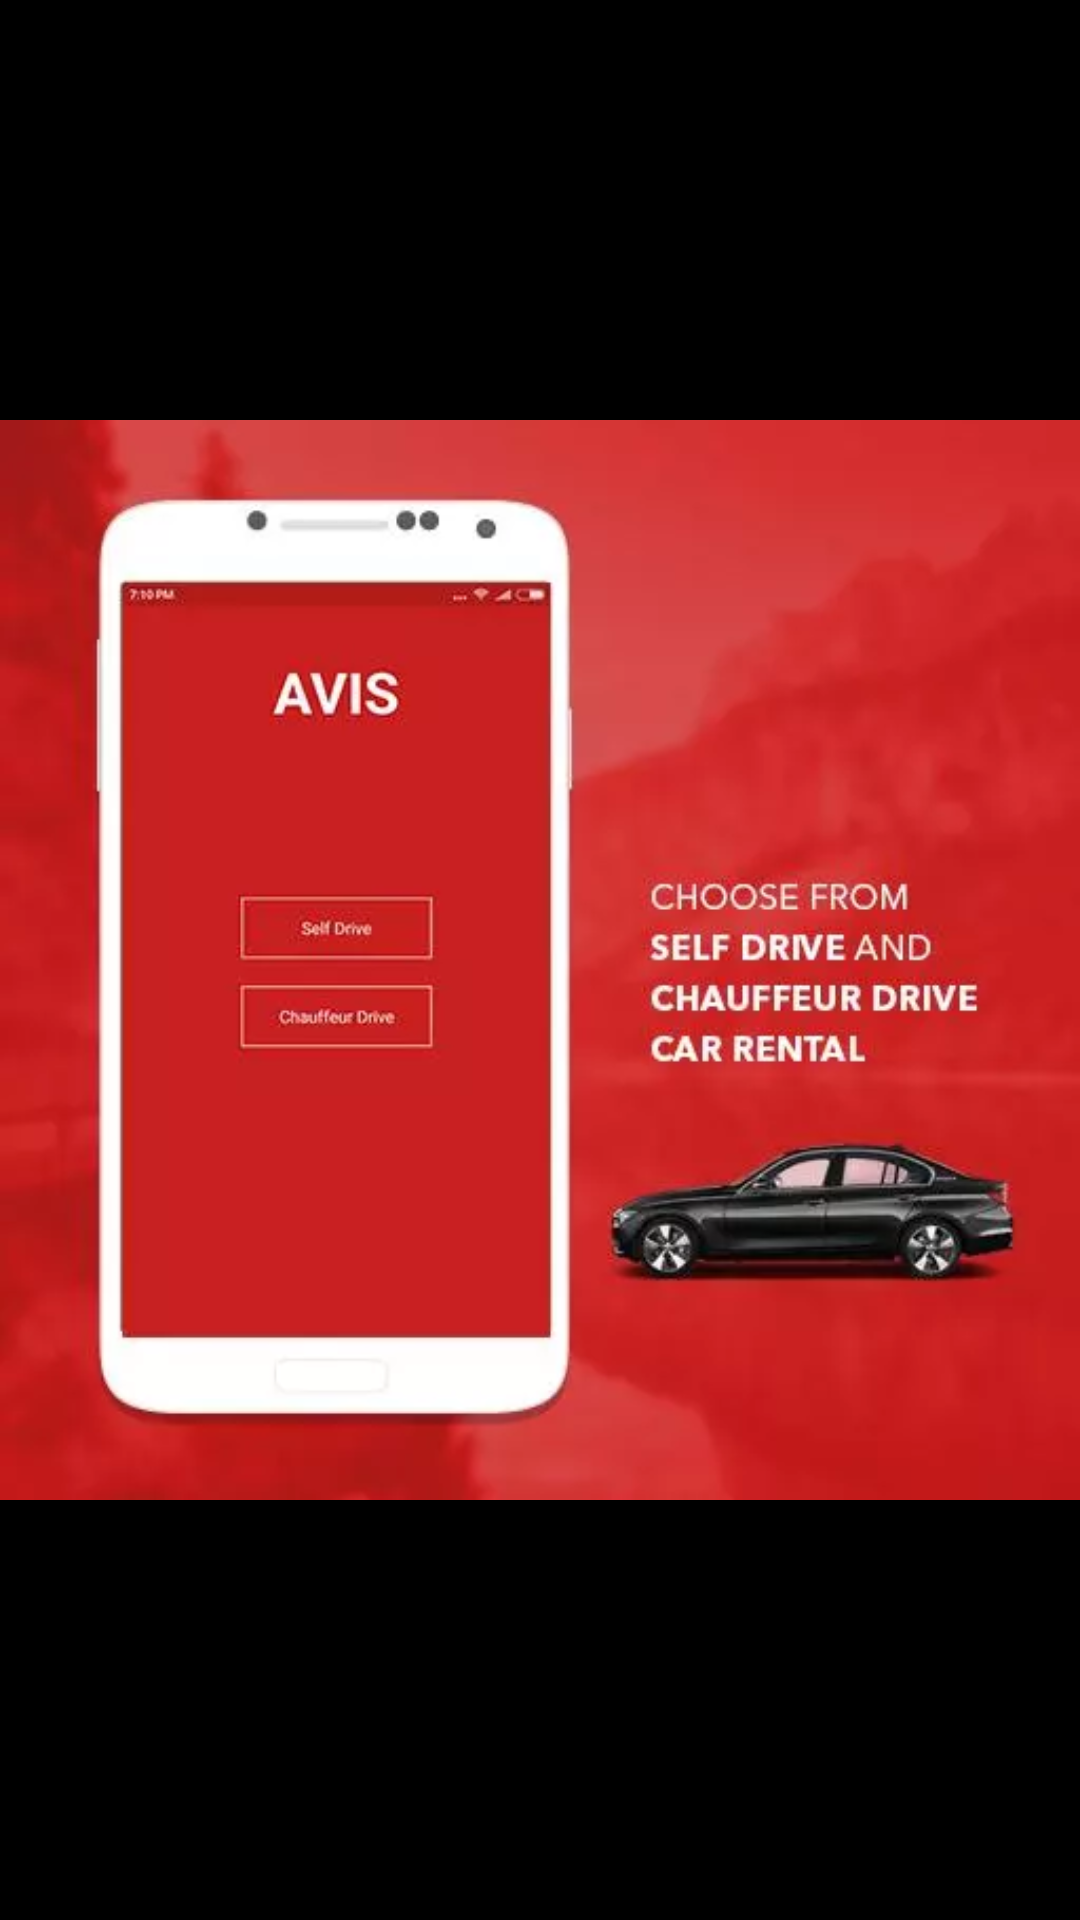 cars on rent: avis india launches its mobile app for self